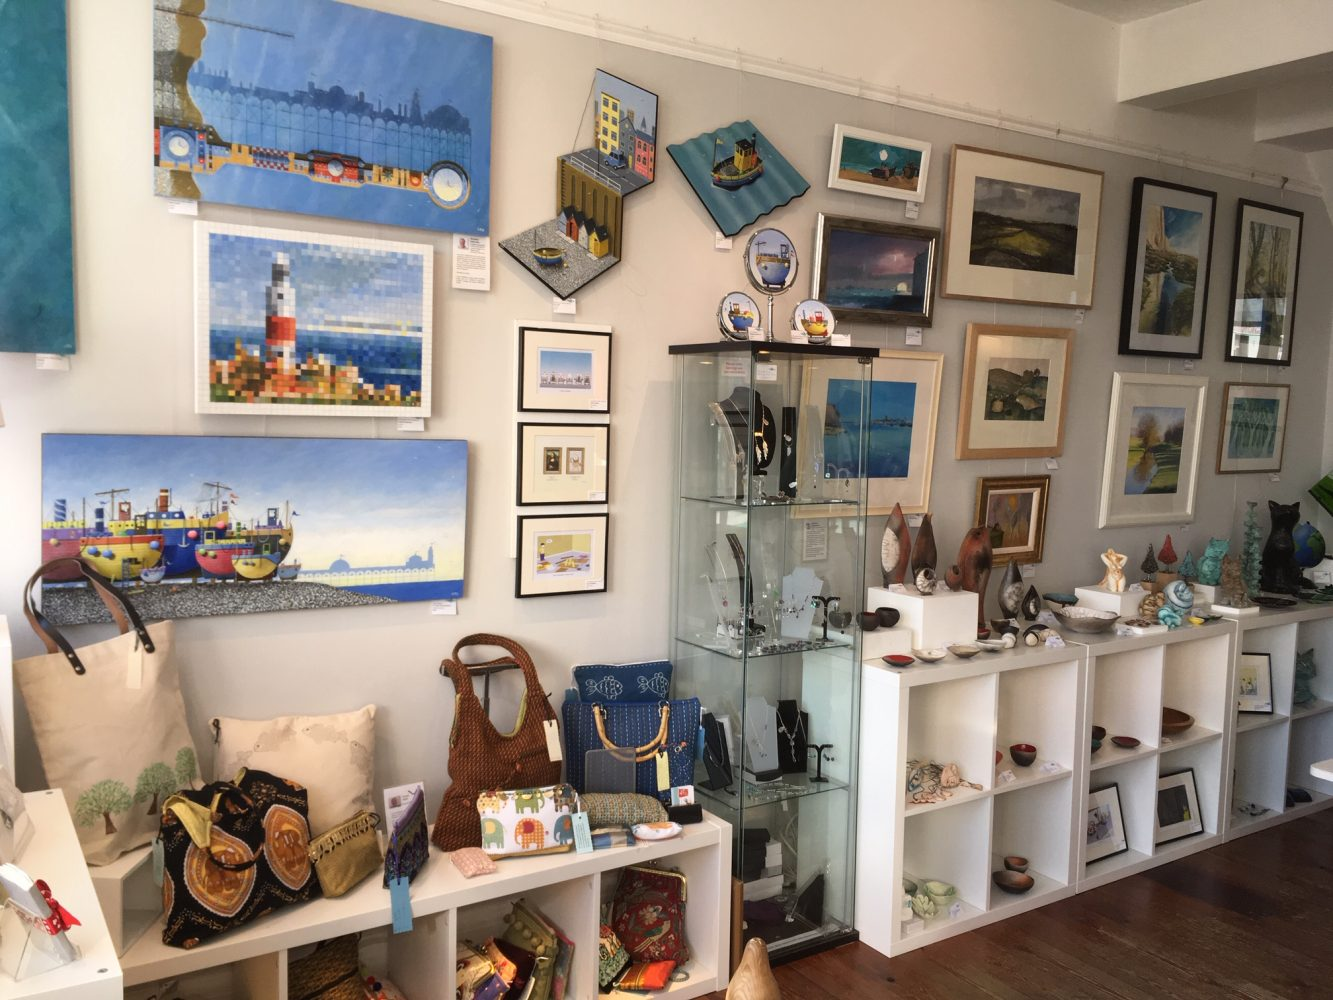 The interior of Shoreham Art Gallery showing pictures, crafts and objects